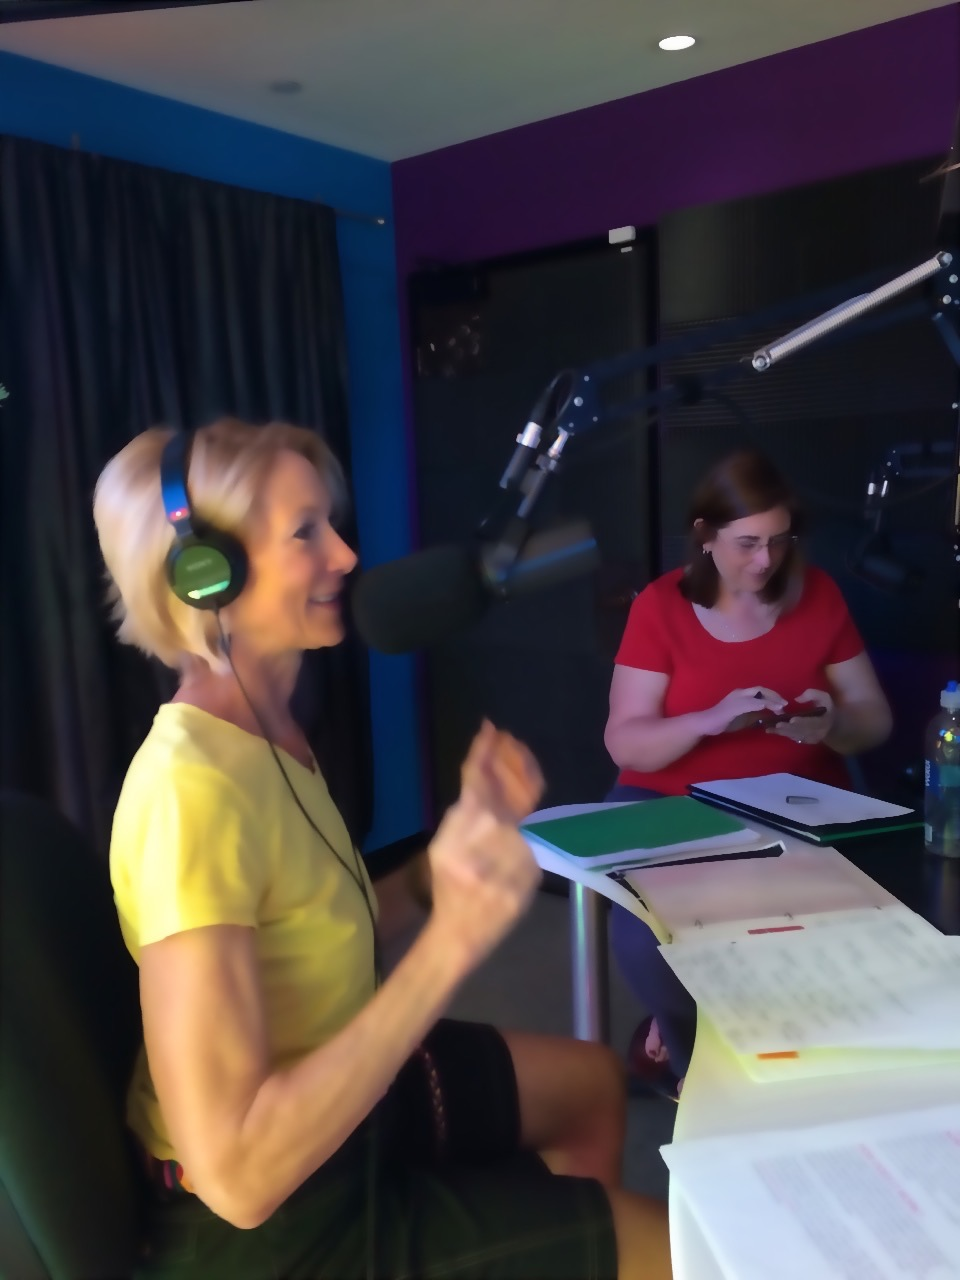 Executive Director, Mary G Schmidt. KX 93.5 Interview. Giving it up for iHeartOC Giving Day